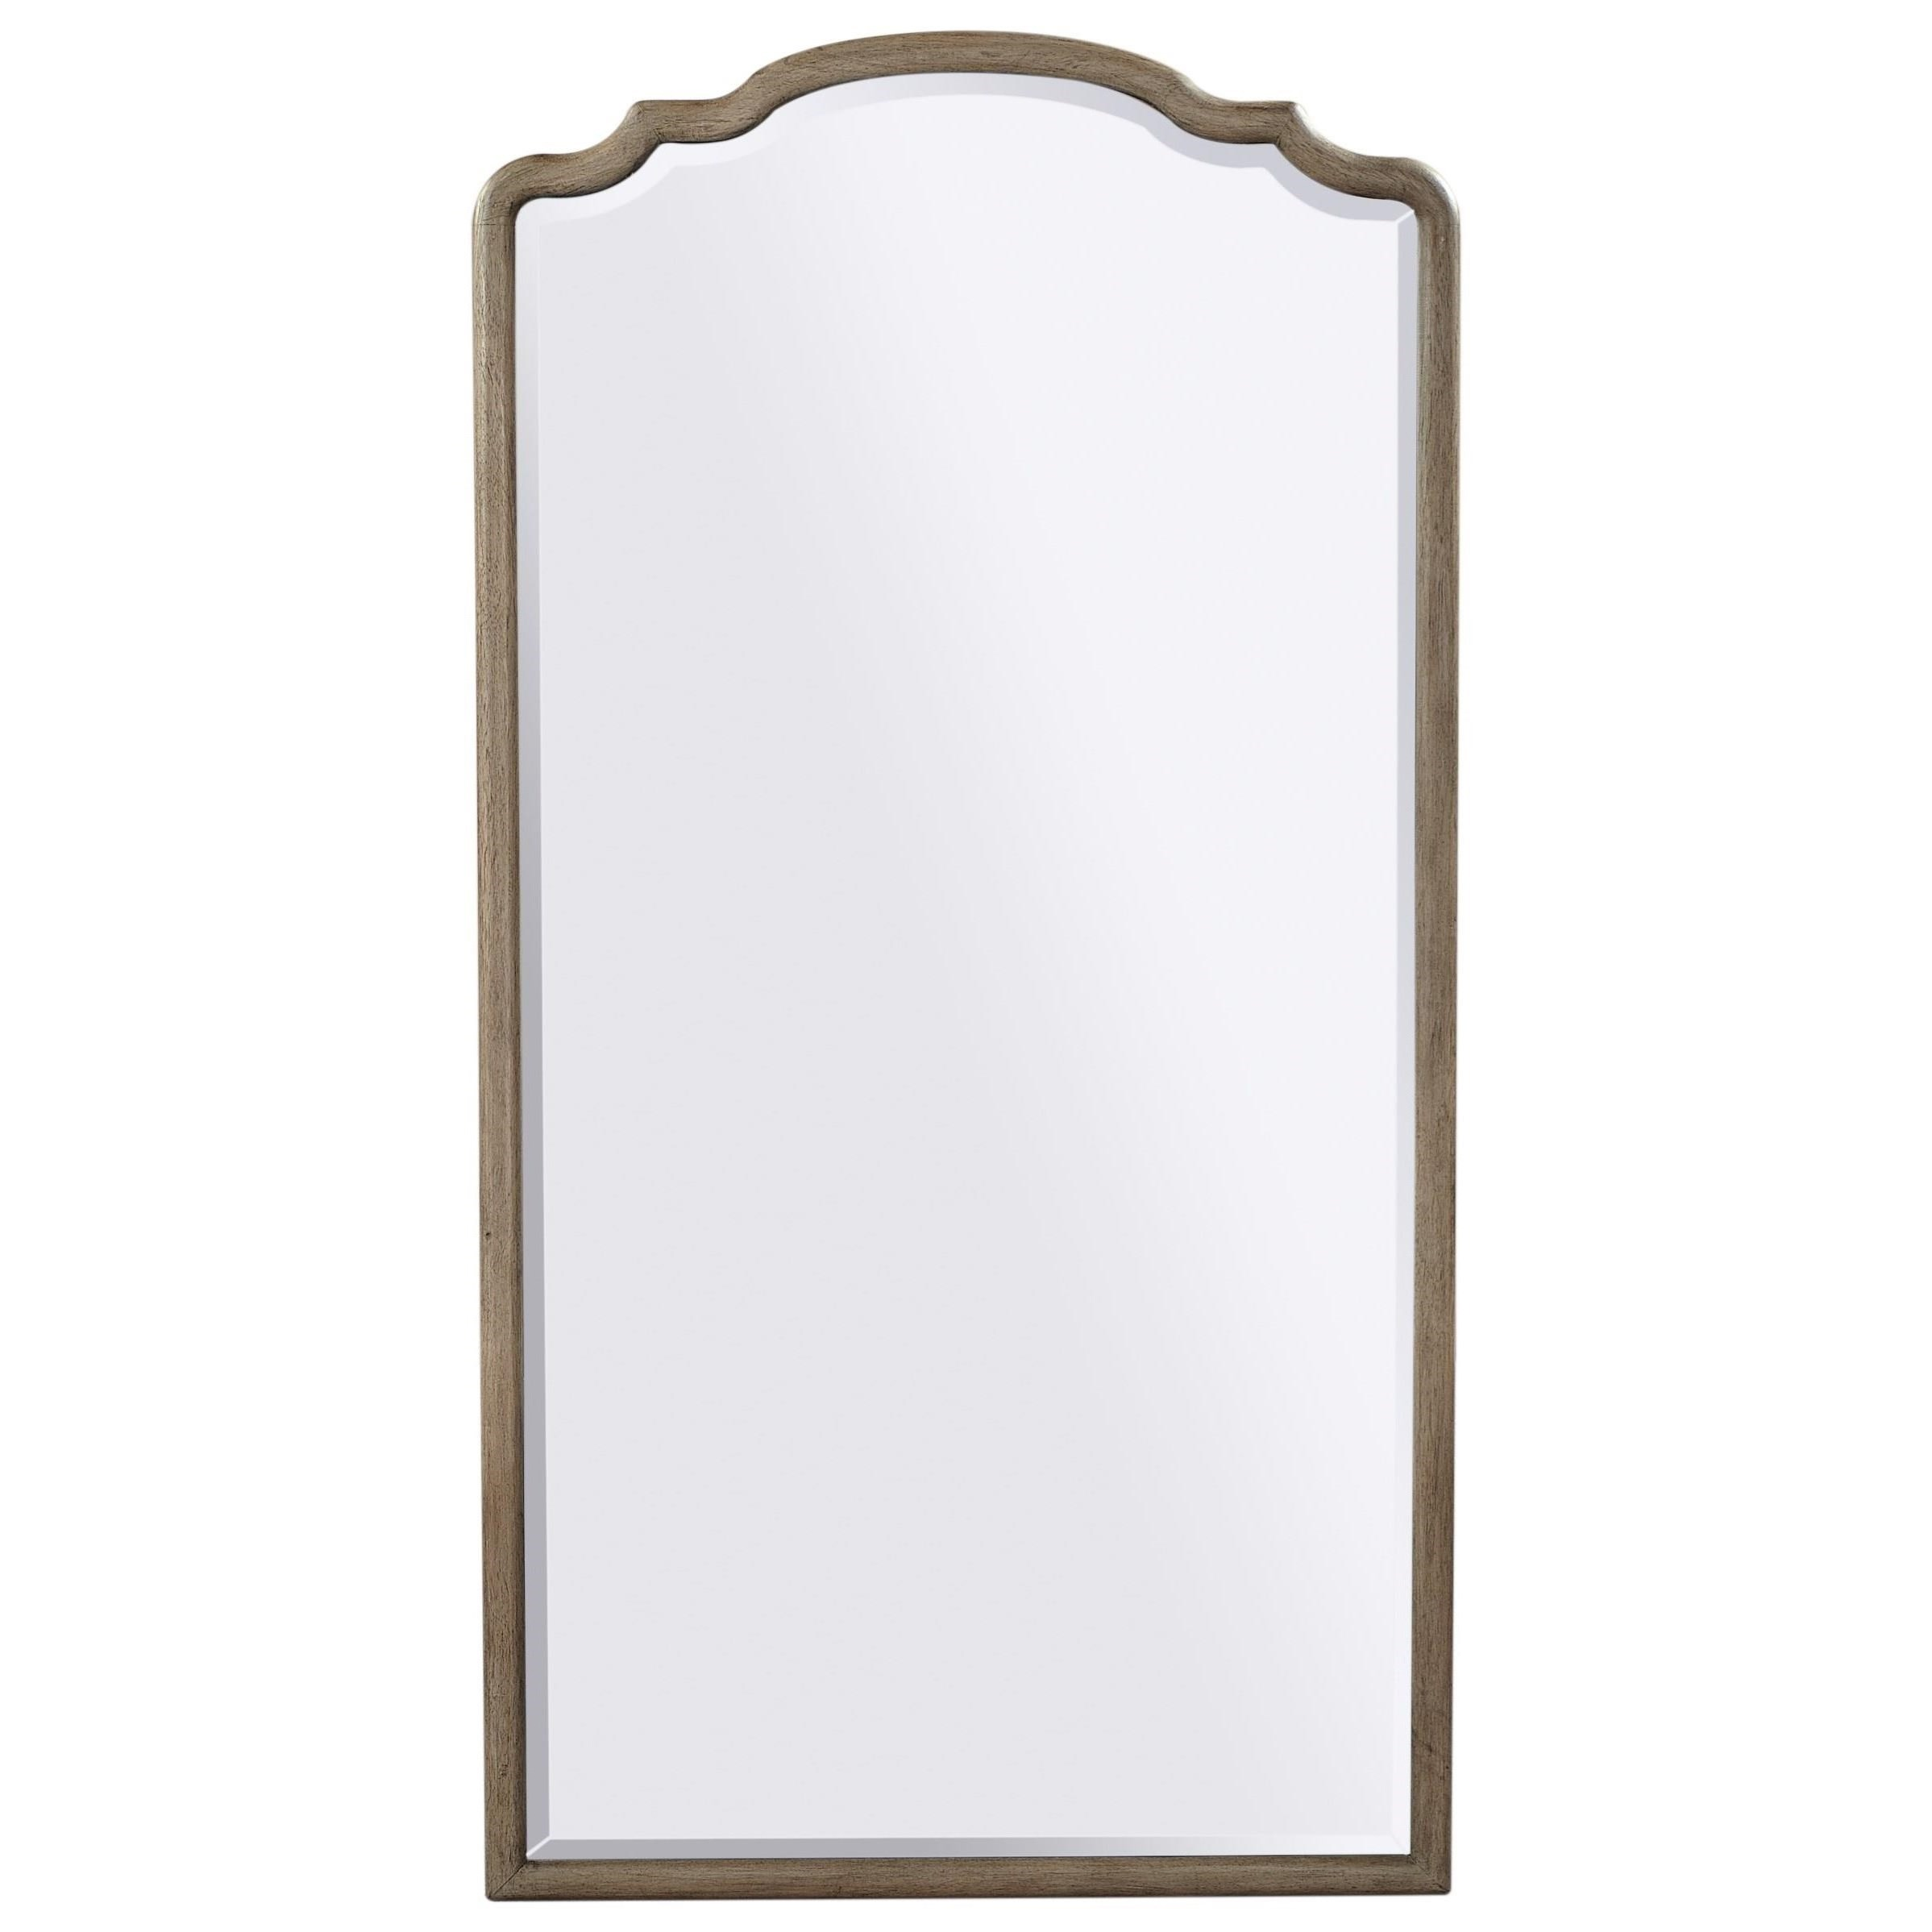 Provence Floor Mirror  by Aspenhome at Walker's Furniture